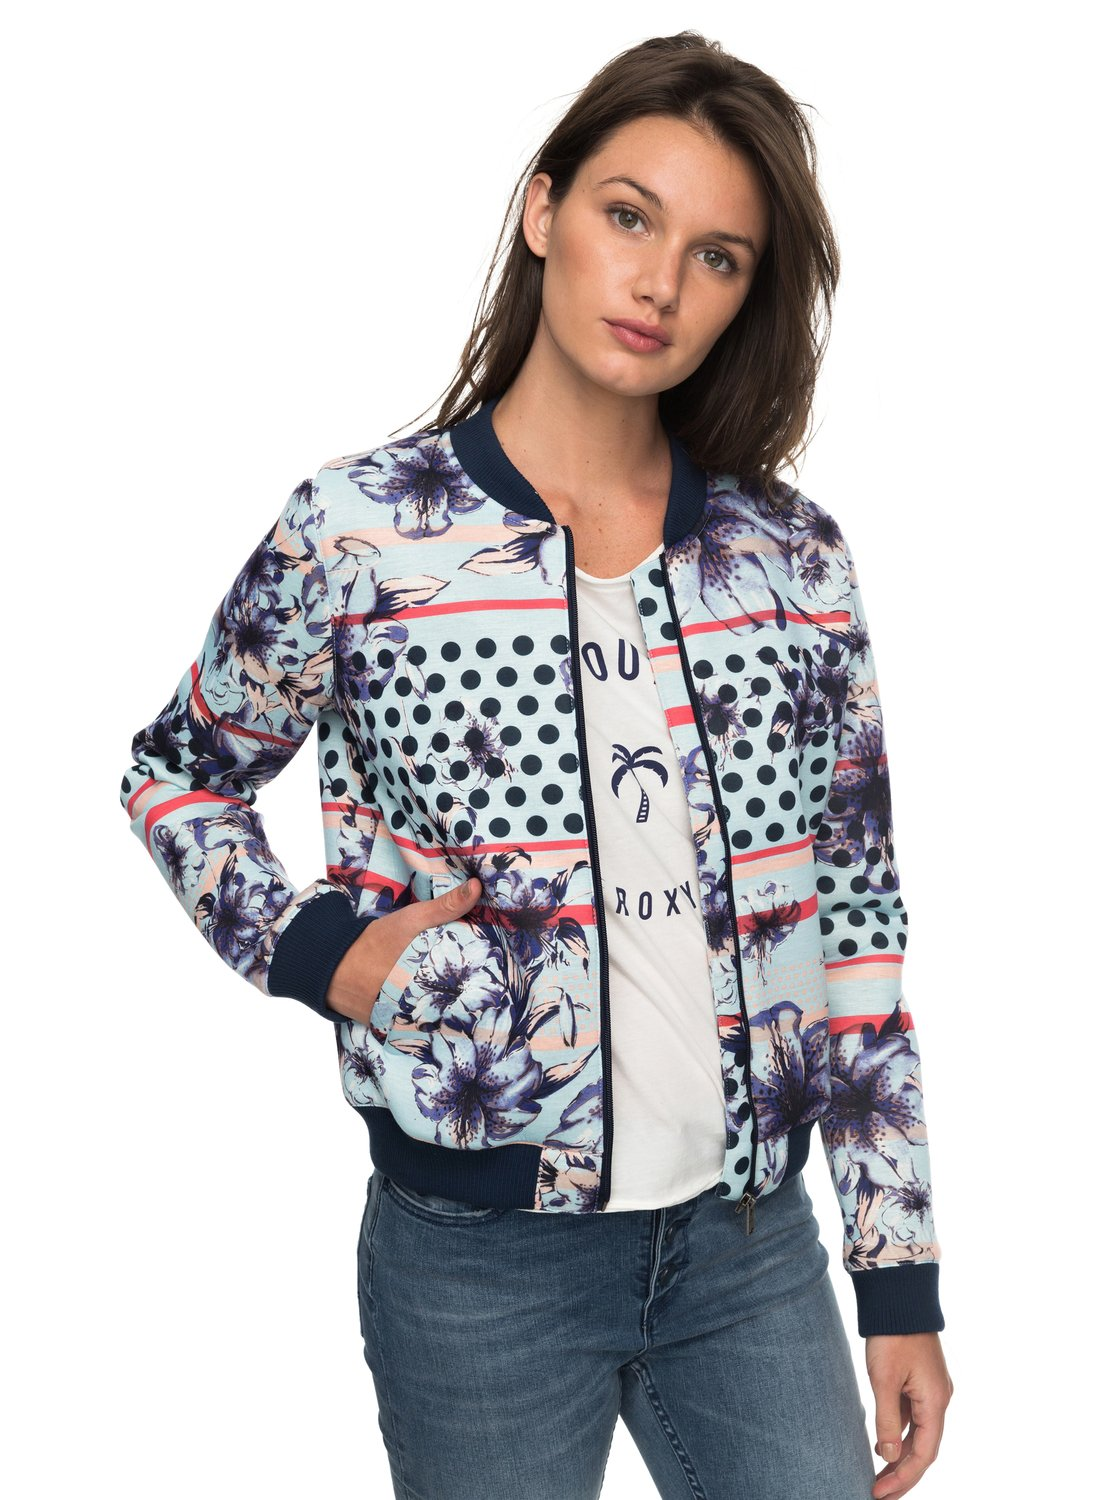 Rock'N Smile - Chaqueta Bomber para Mujer Roxy